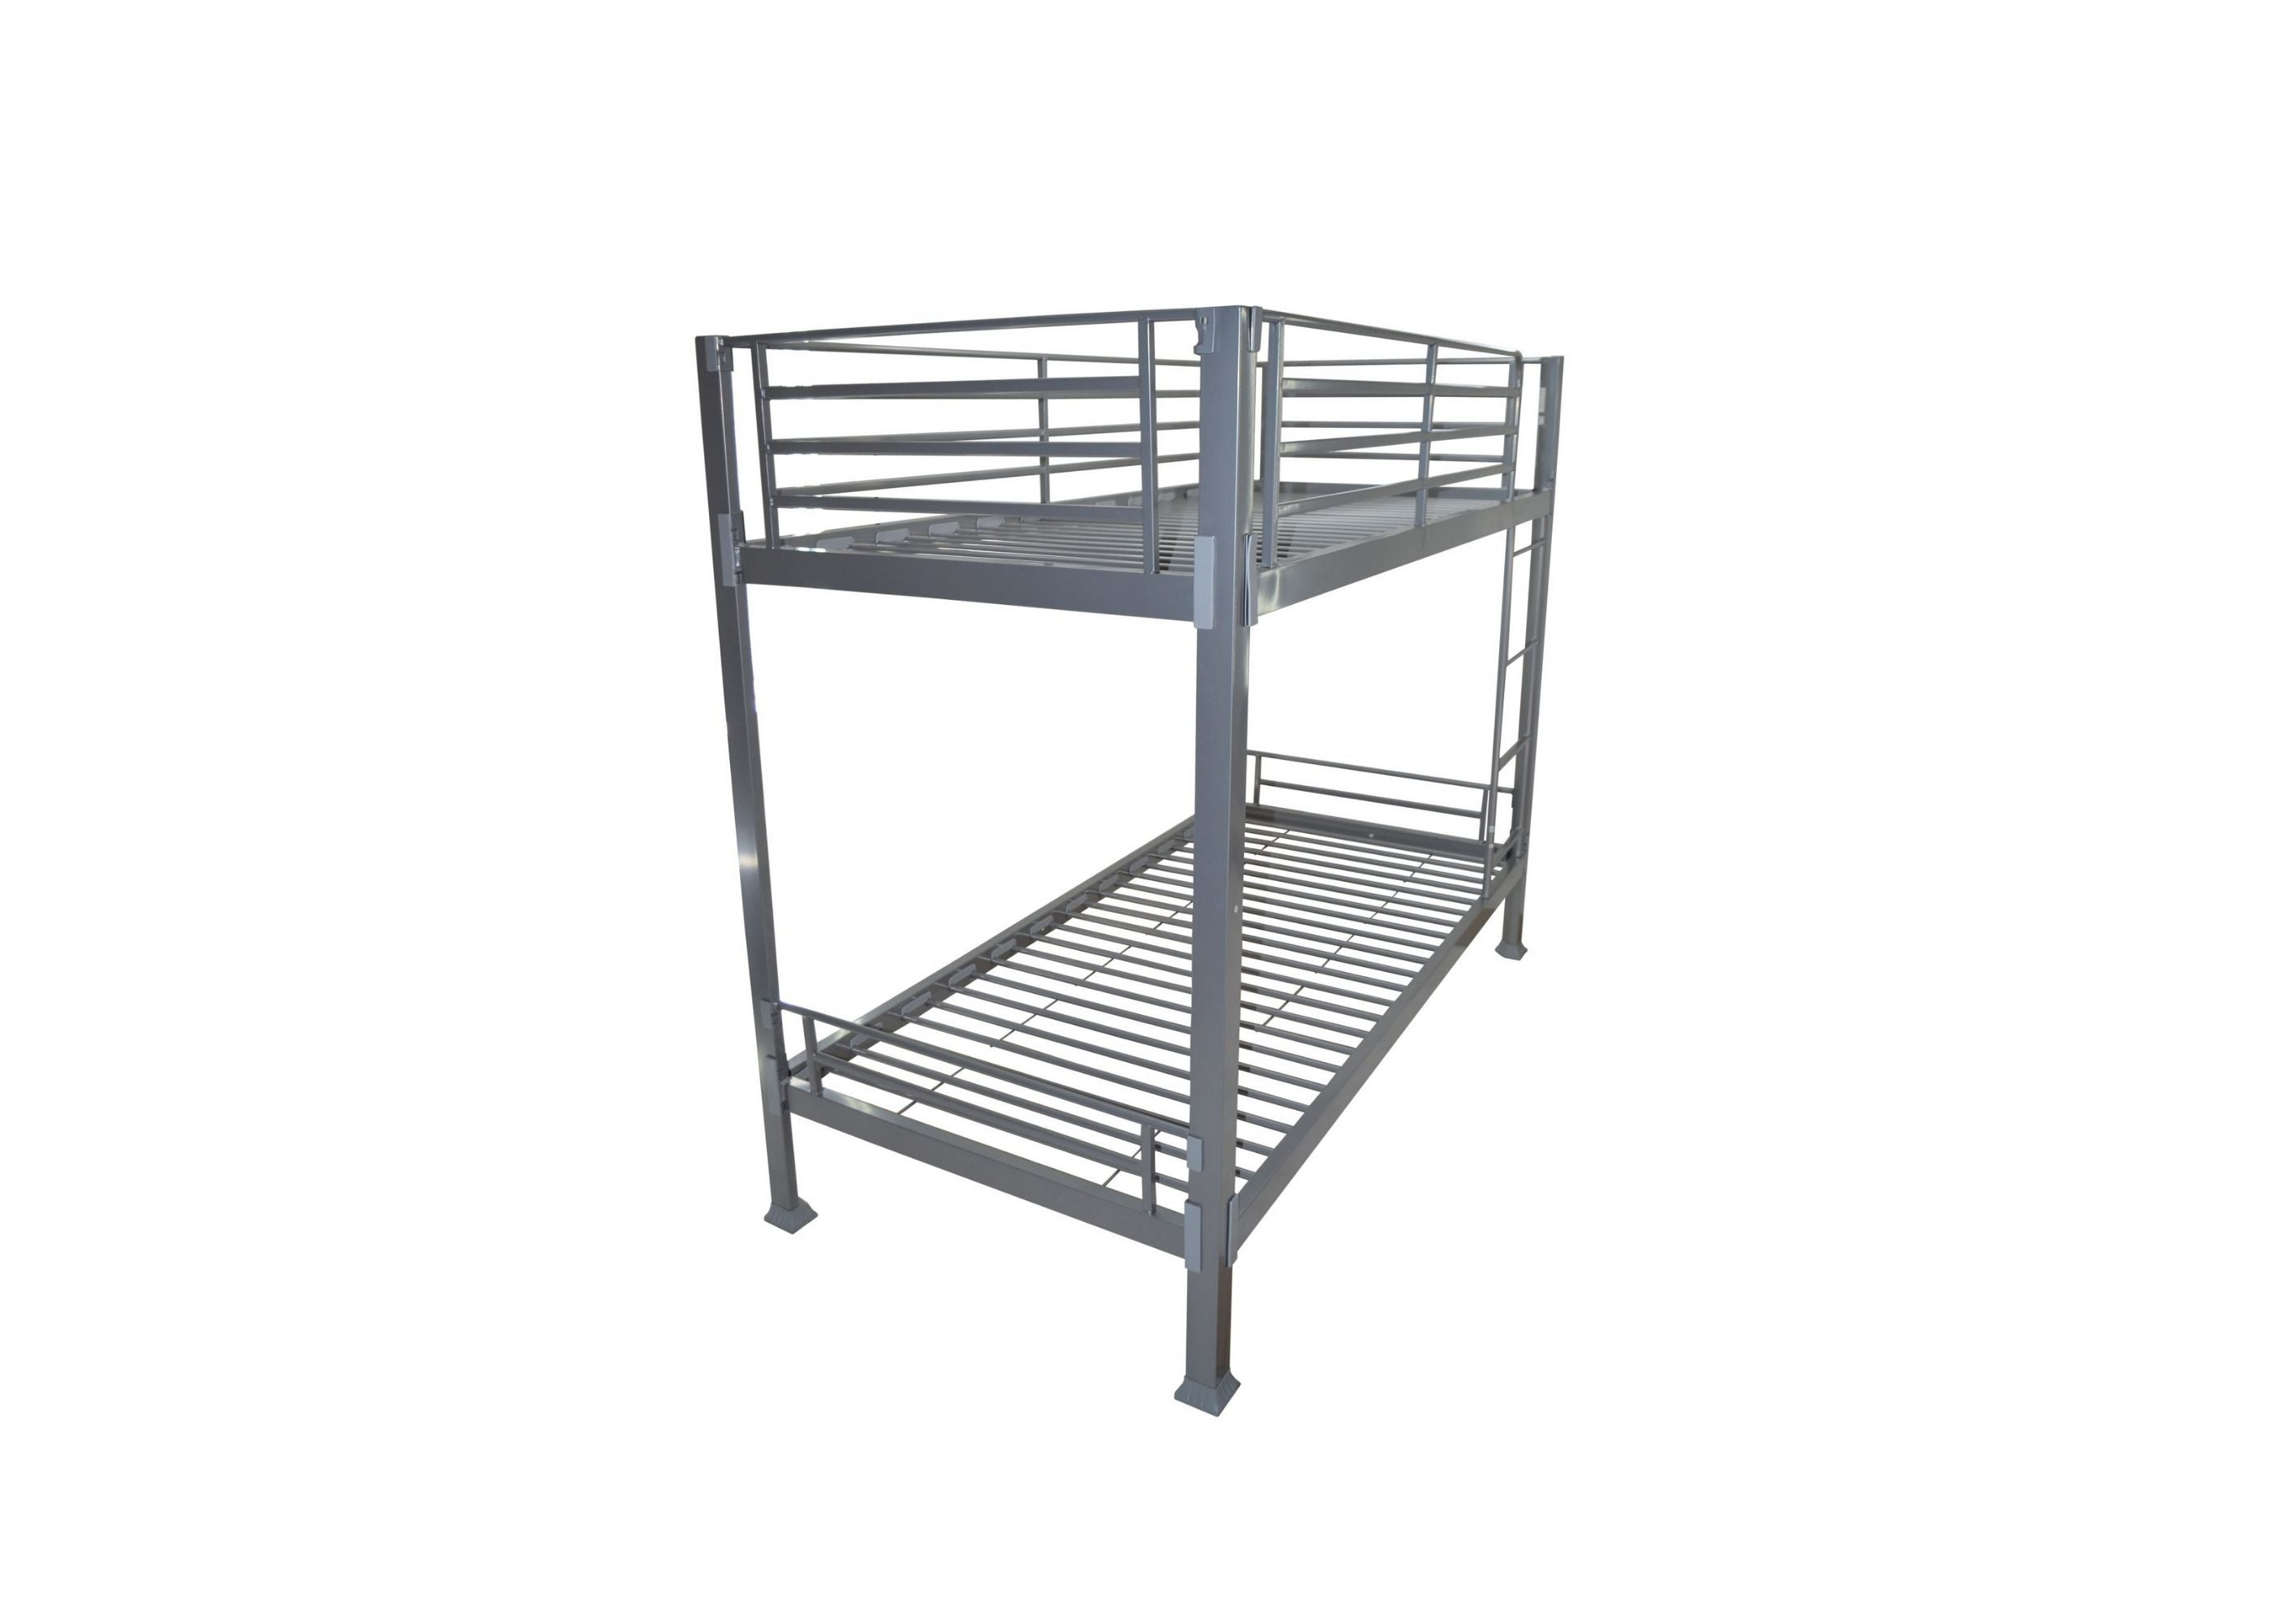 Picture of: Very Strong Metal Contract Bunk Bed Reinforced Beds